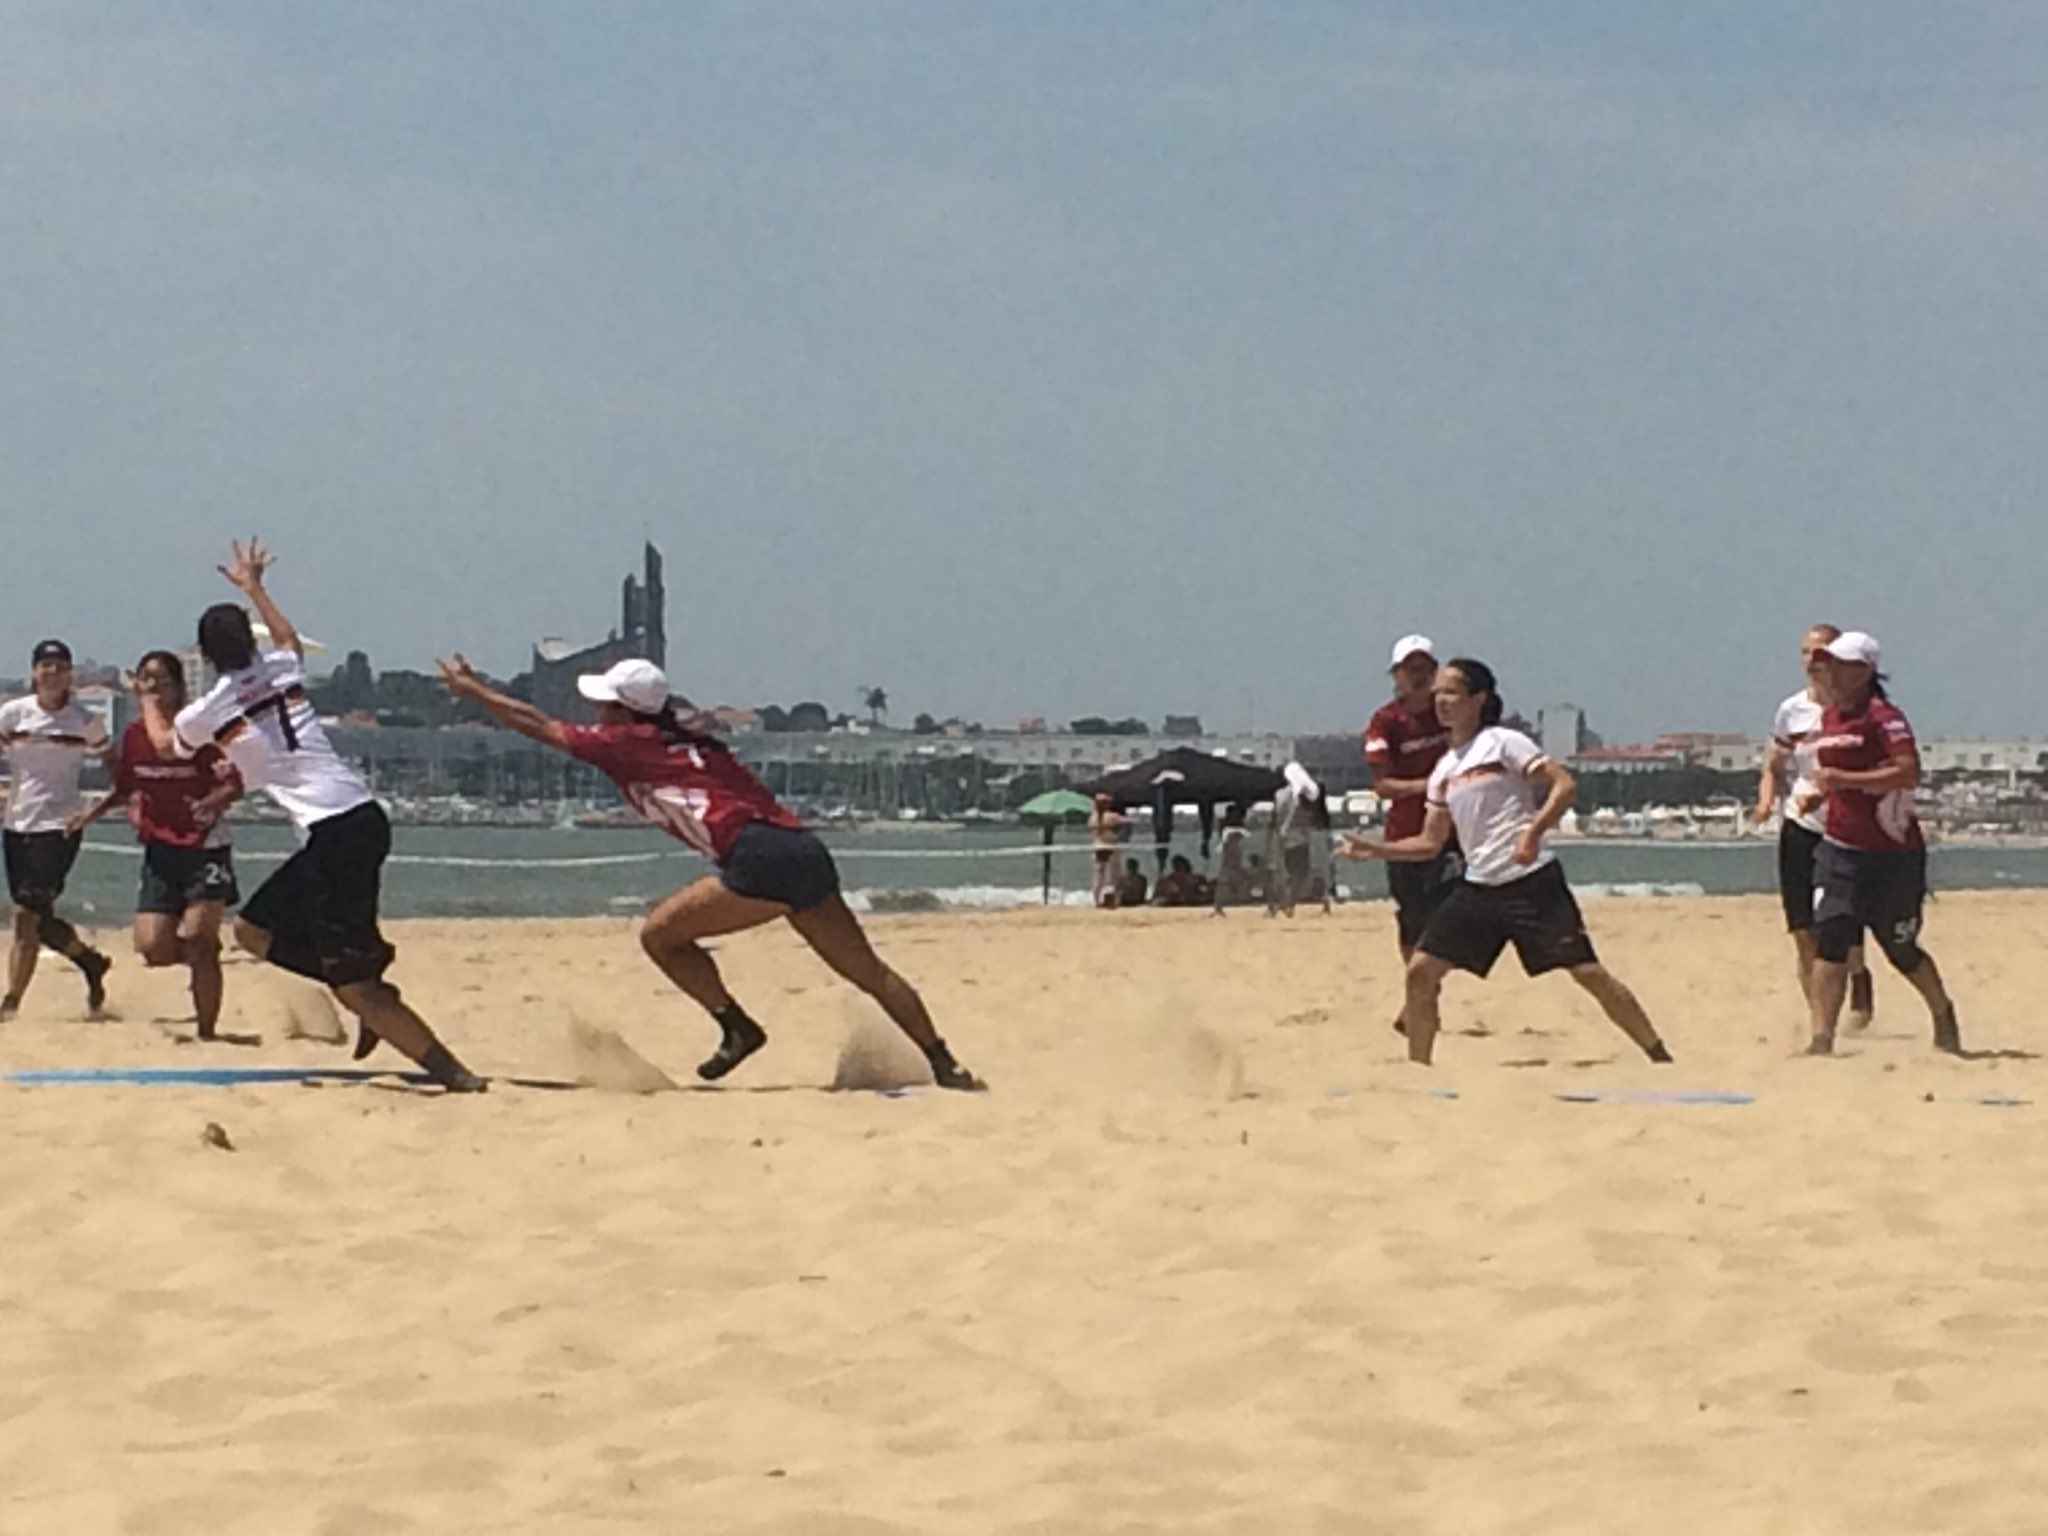 Women&#039;s Division, #GER vs #SIN is underway. We&#039;re up 2-0. #SANDsation #WMN #WCBU2017 https://t.co/suwNiD36wU <a href='https://twitter.com/Germany_WCBU/status/877148092436545537/photo/1' target='_blank'>See original &raquo;</a>